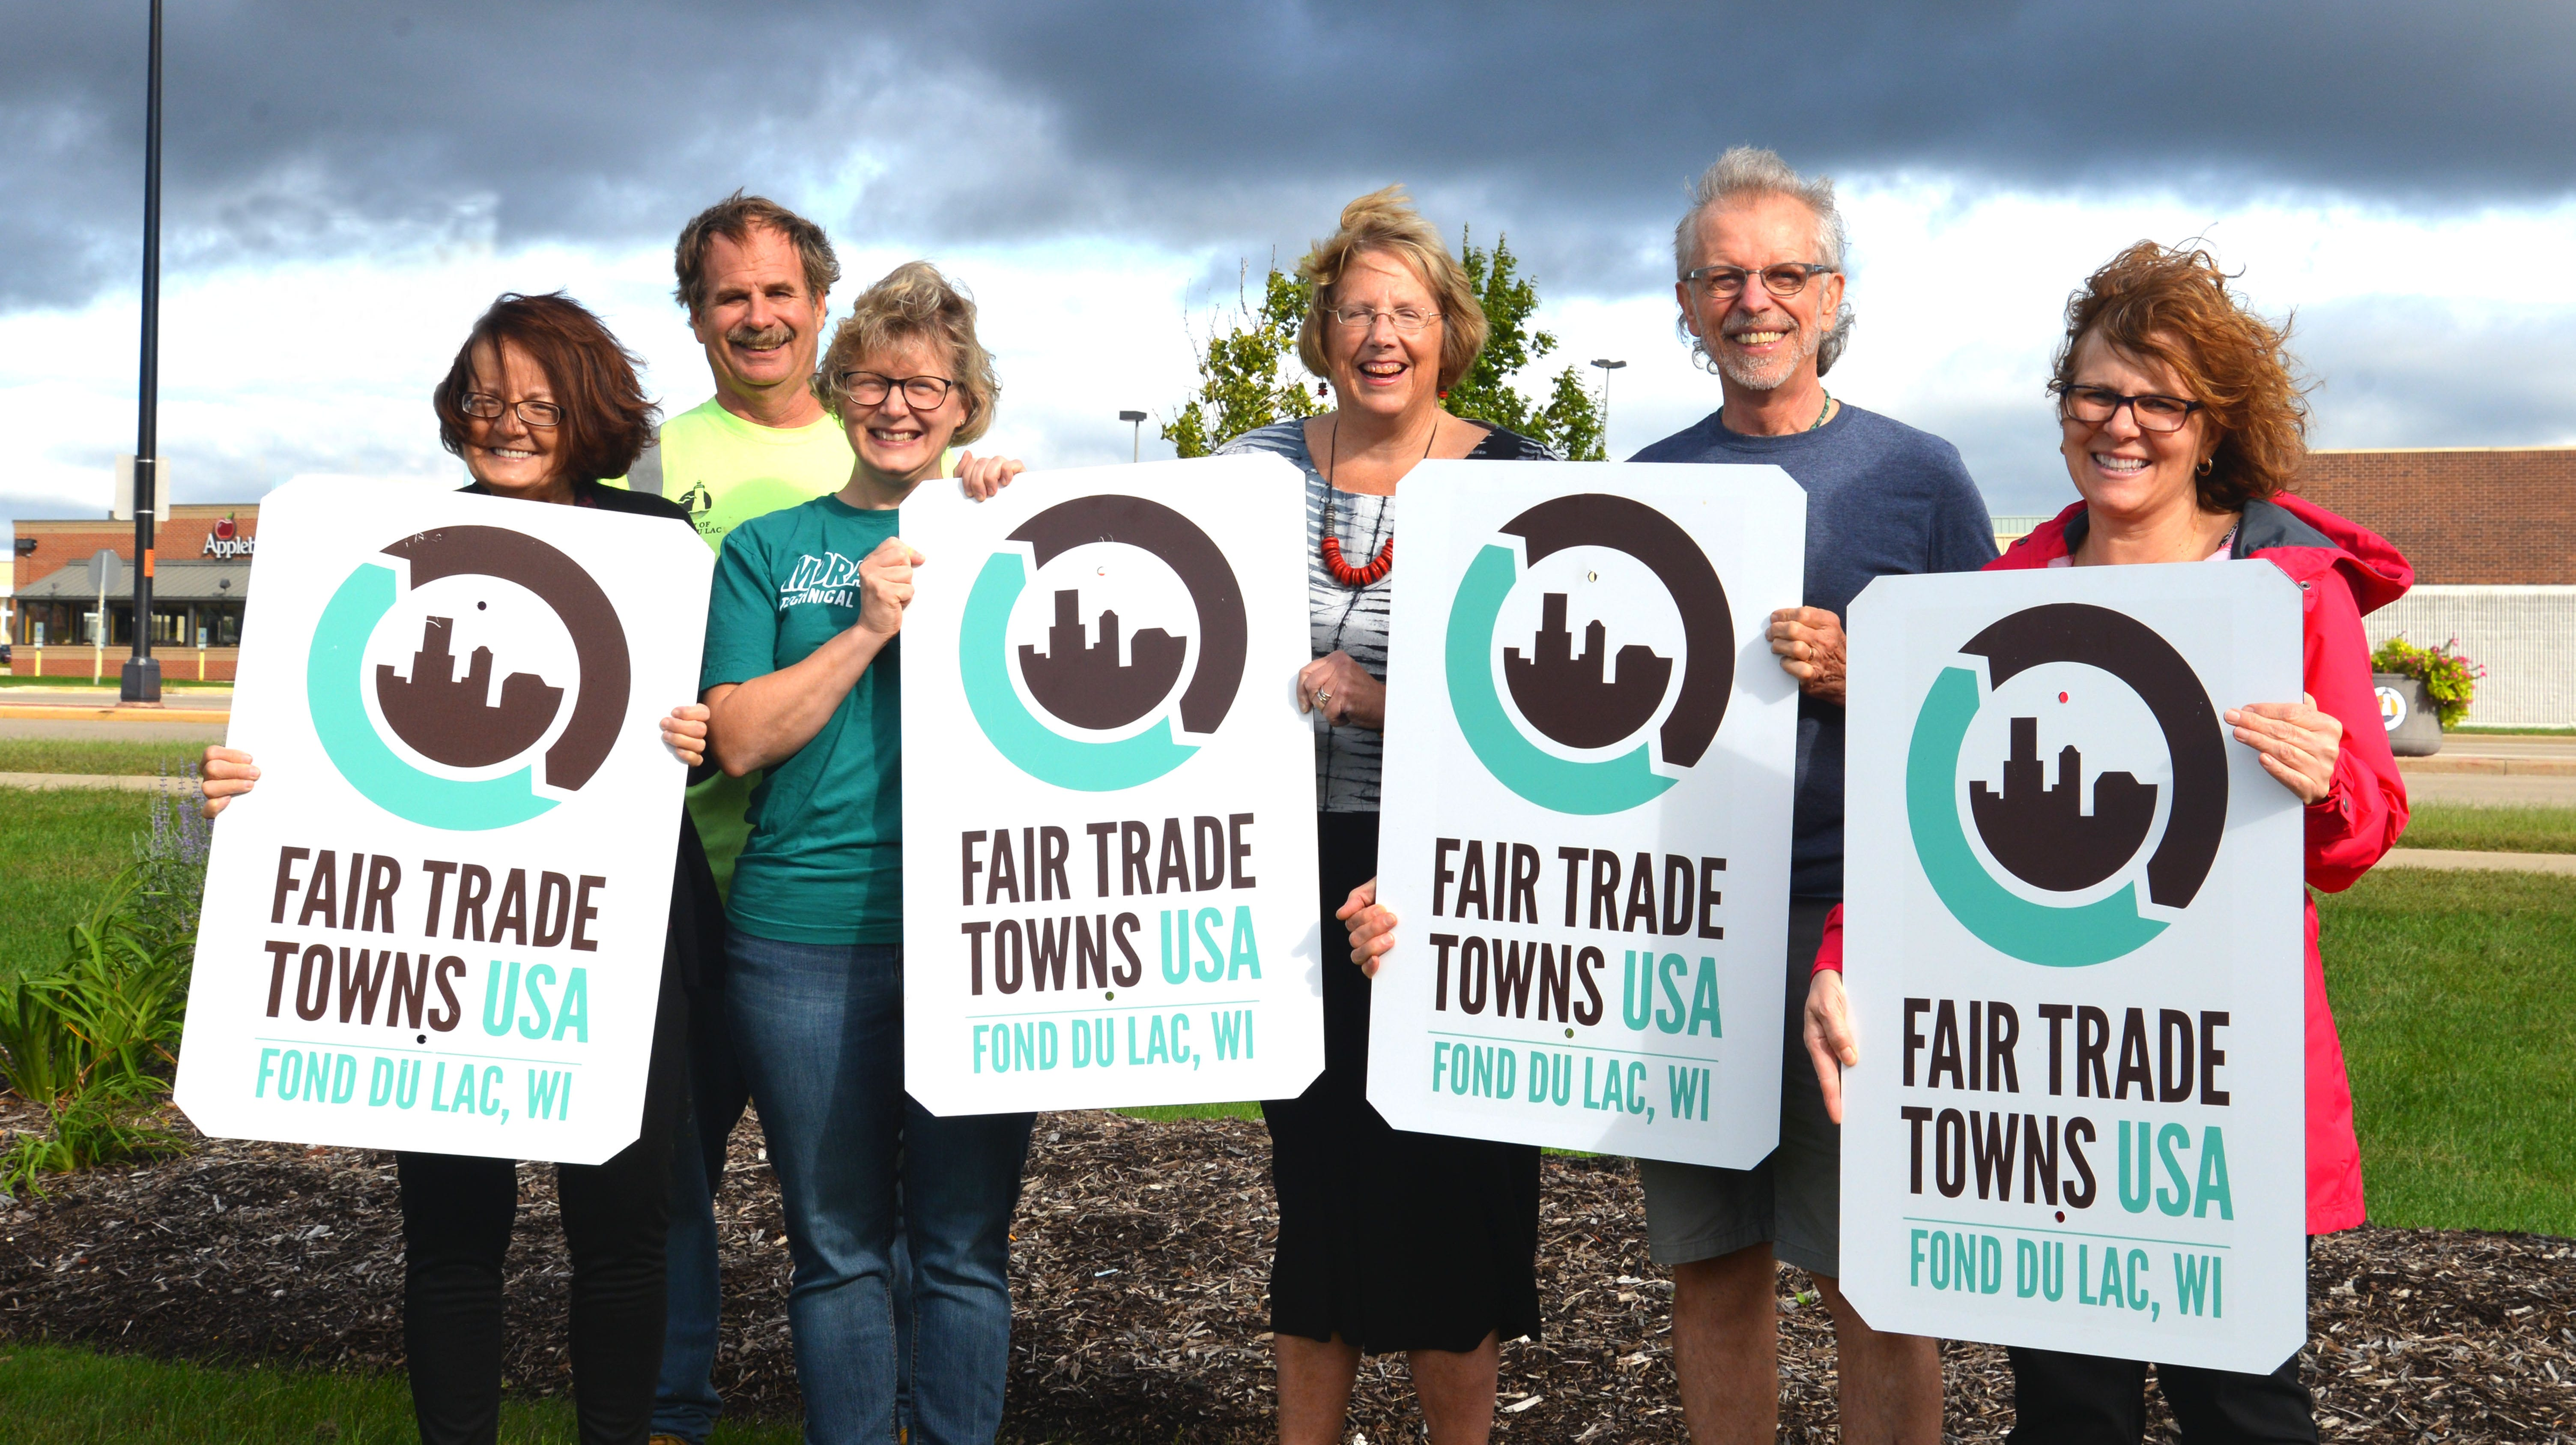 Fair trade and proud: FDL posts new signage |Streetwise